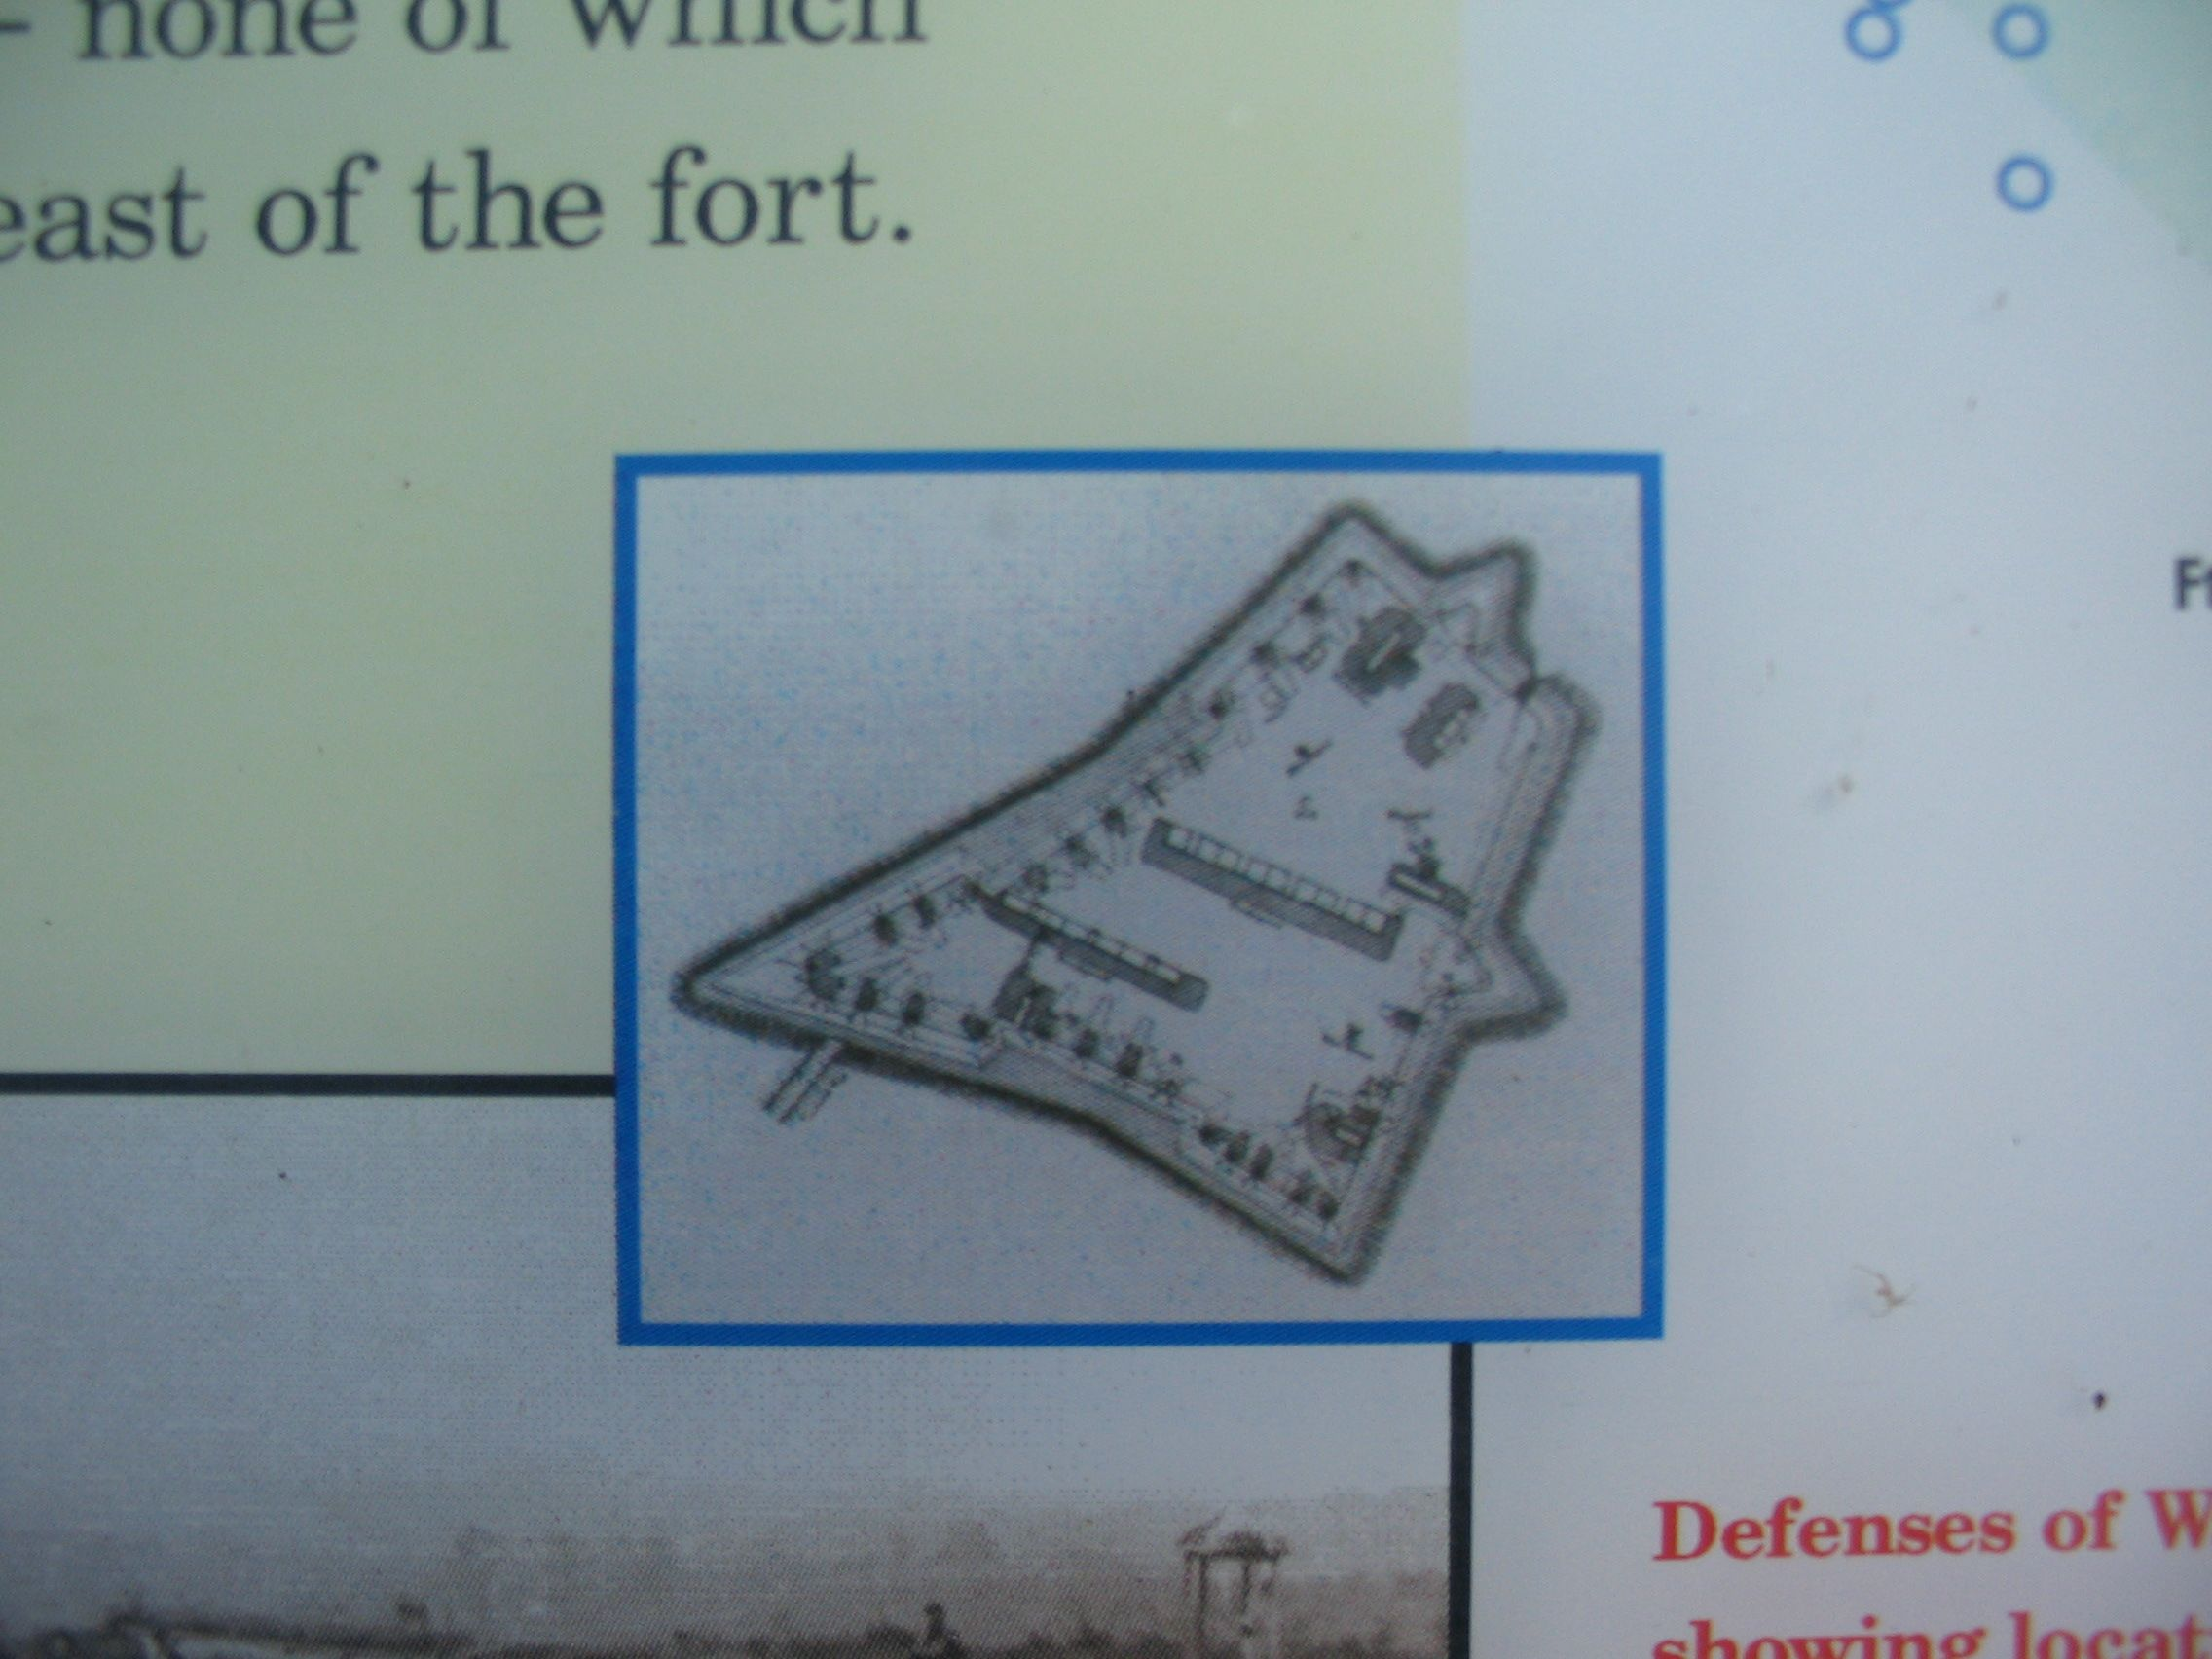 Plan of the Fort